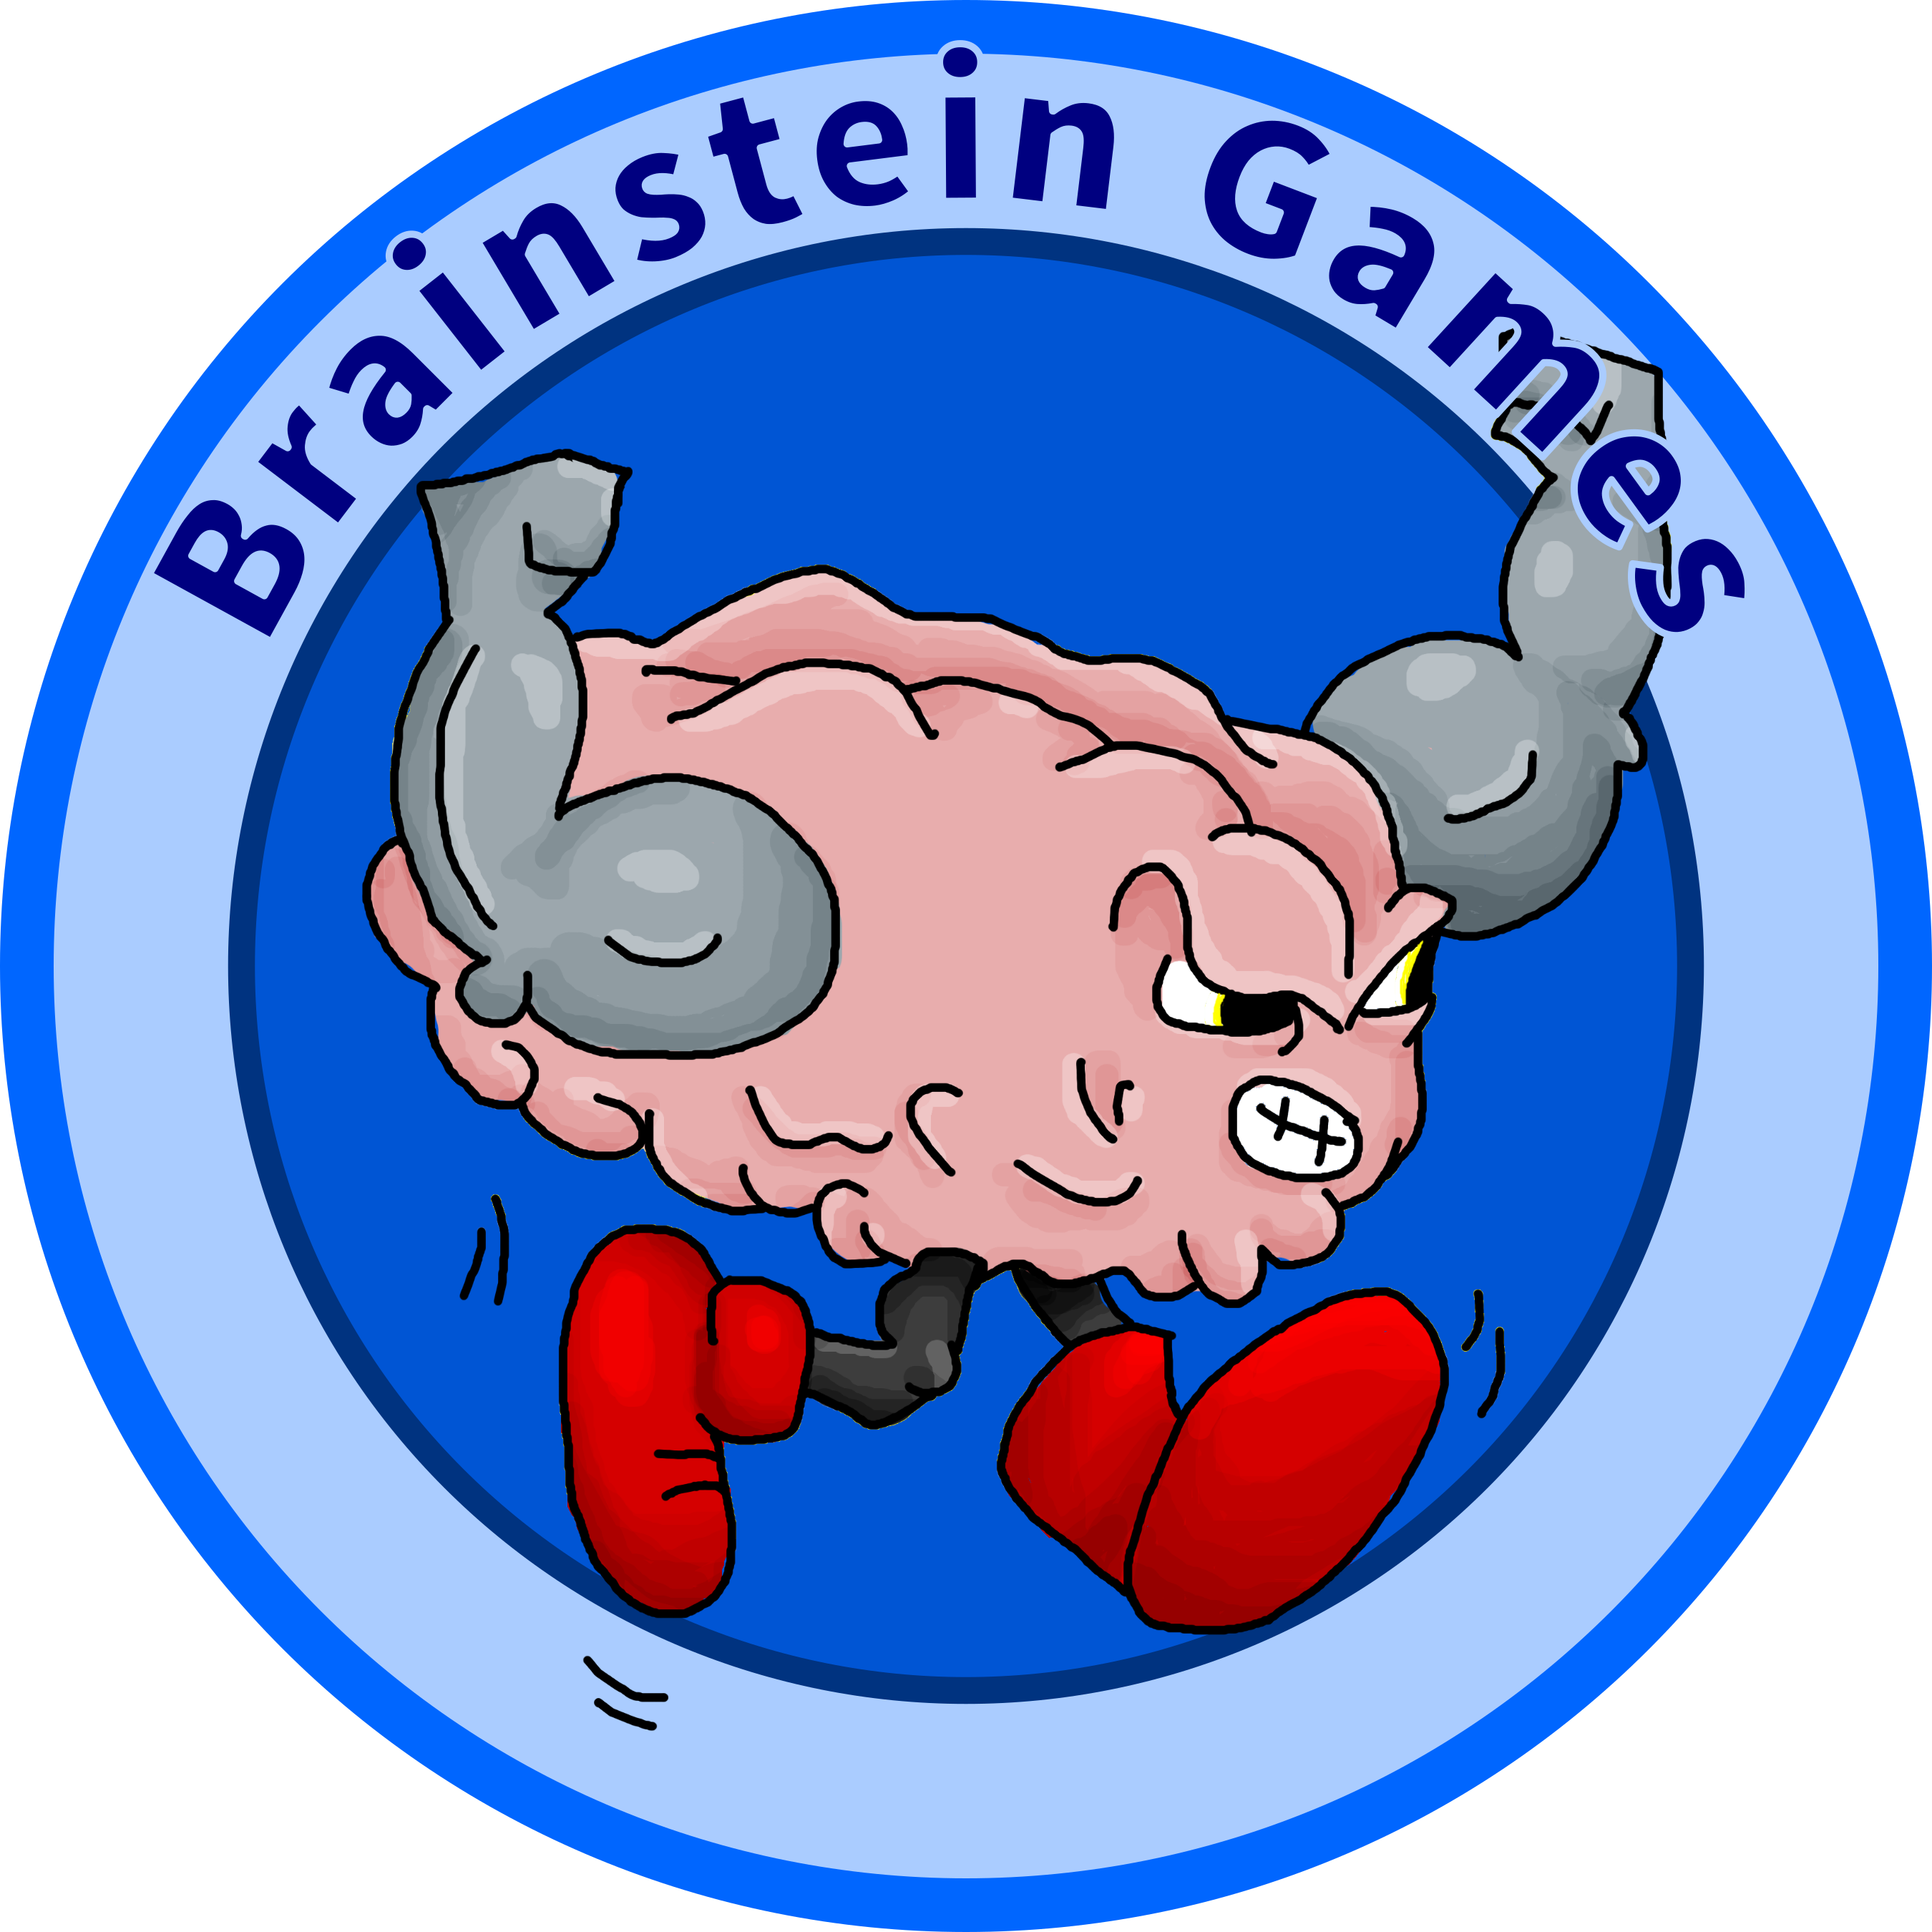 Brainstein Games Blog